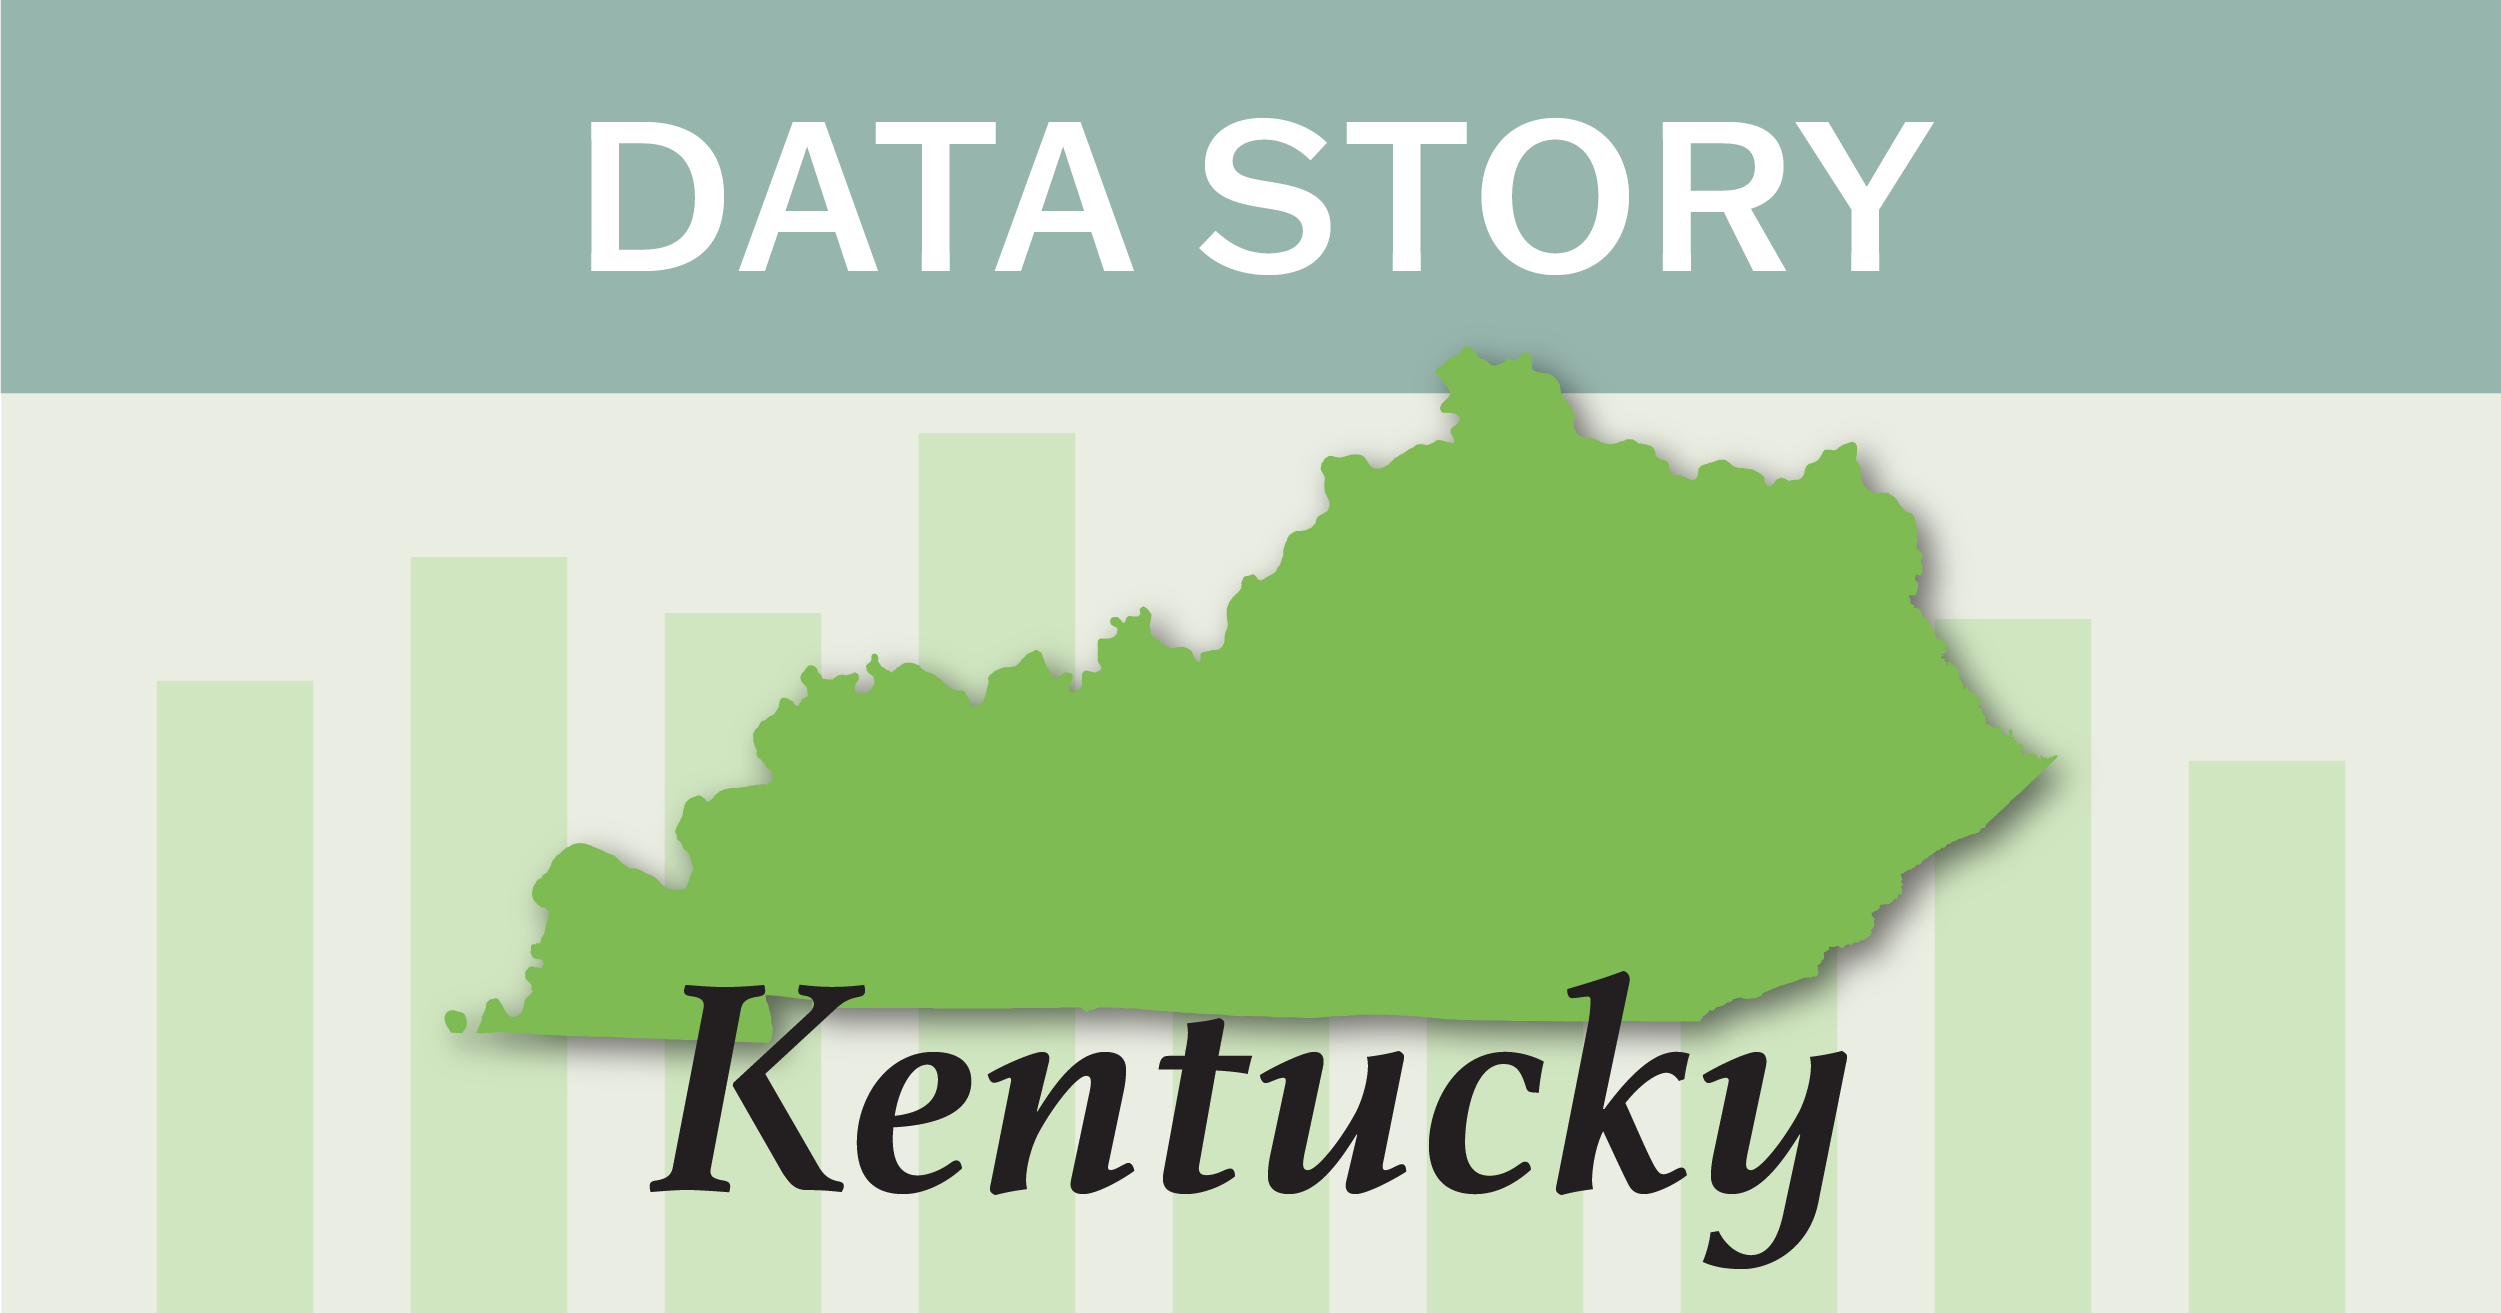 Outline of the state of Kentucky.